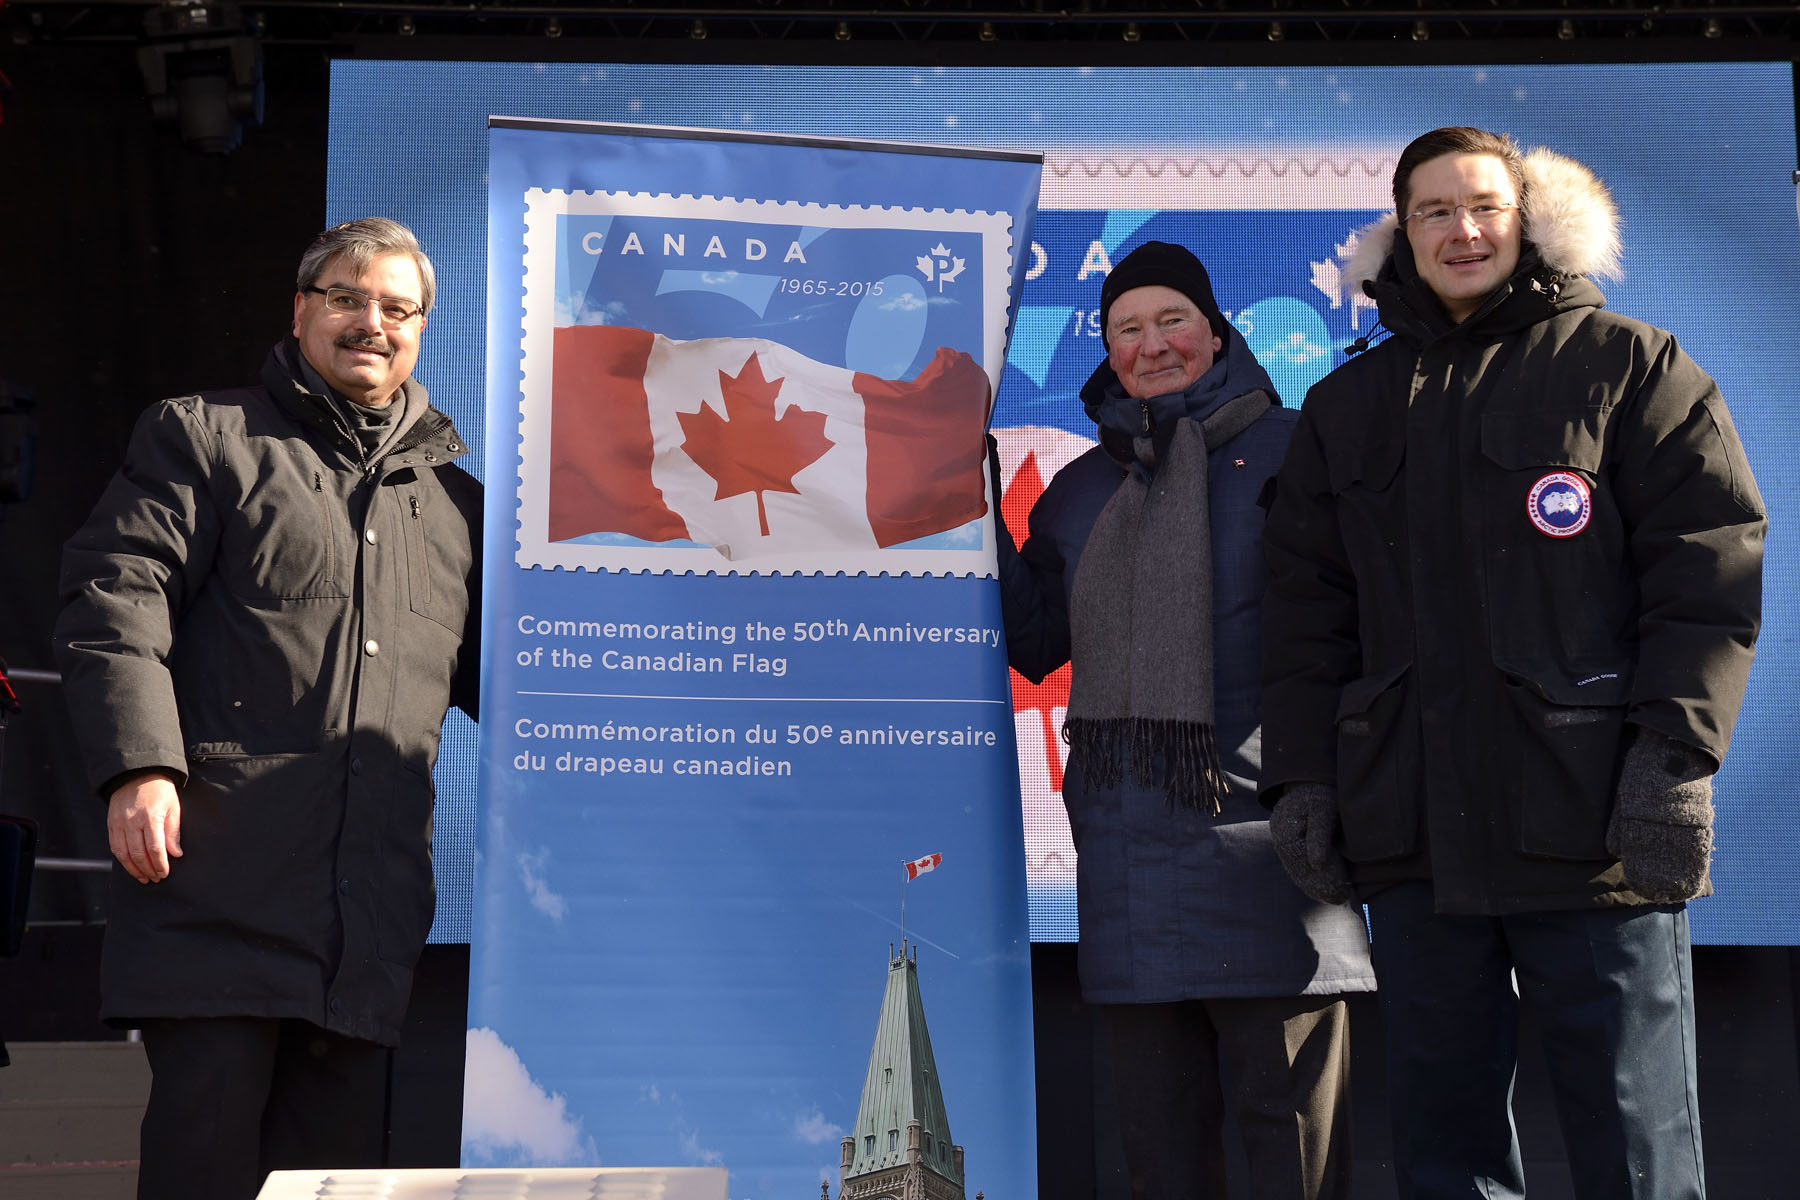 Along with Mr. Deepak Chopra, President and CEO of Canada Post (left) and Mr. Pierre Poilievre, Minister responsible for the National Capital Commission (right), the Governor General unveiled a new stamp commemorating the 50th anniversary.